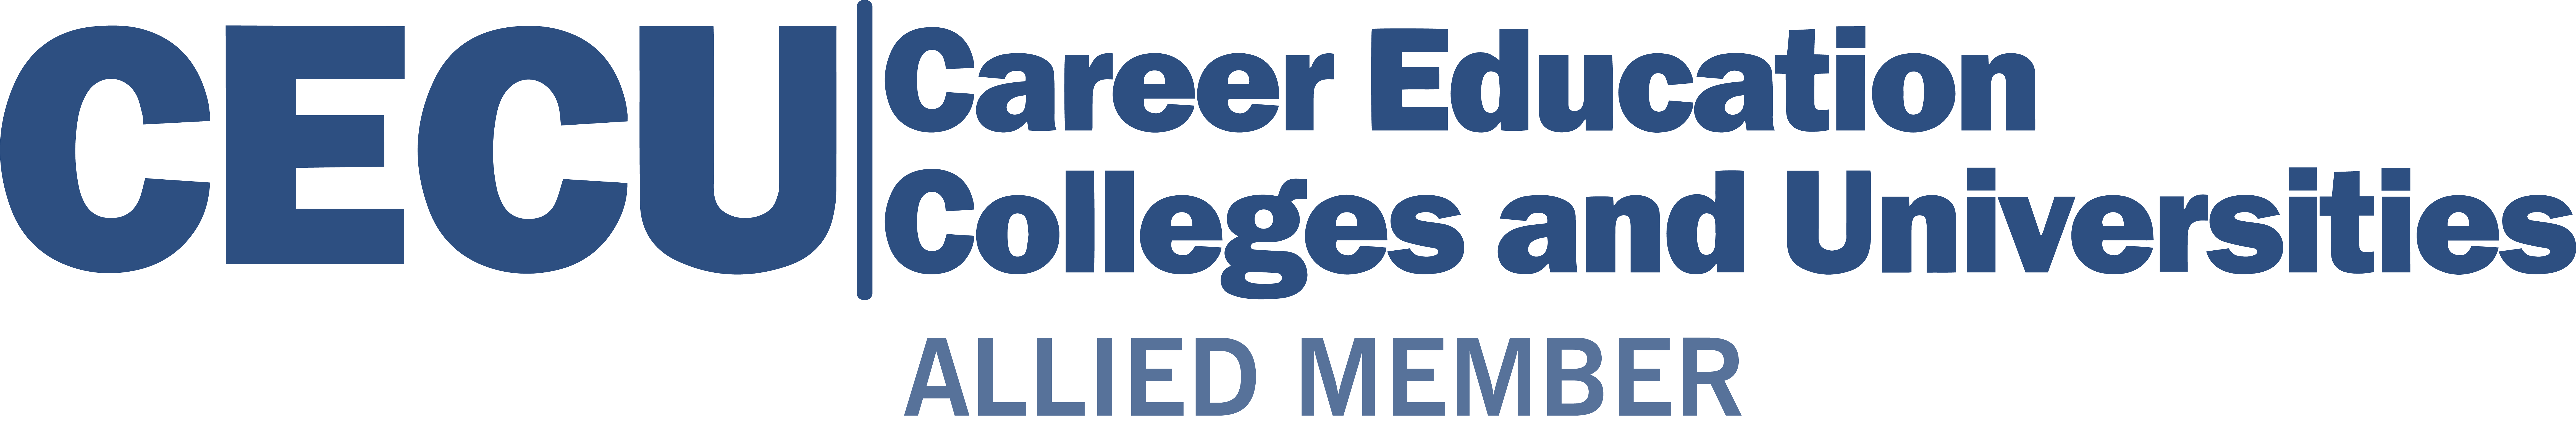 CECU career education colleges and universities allied member